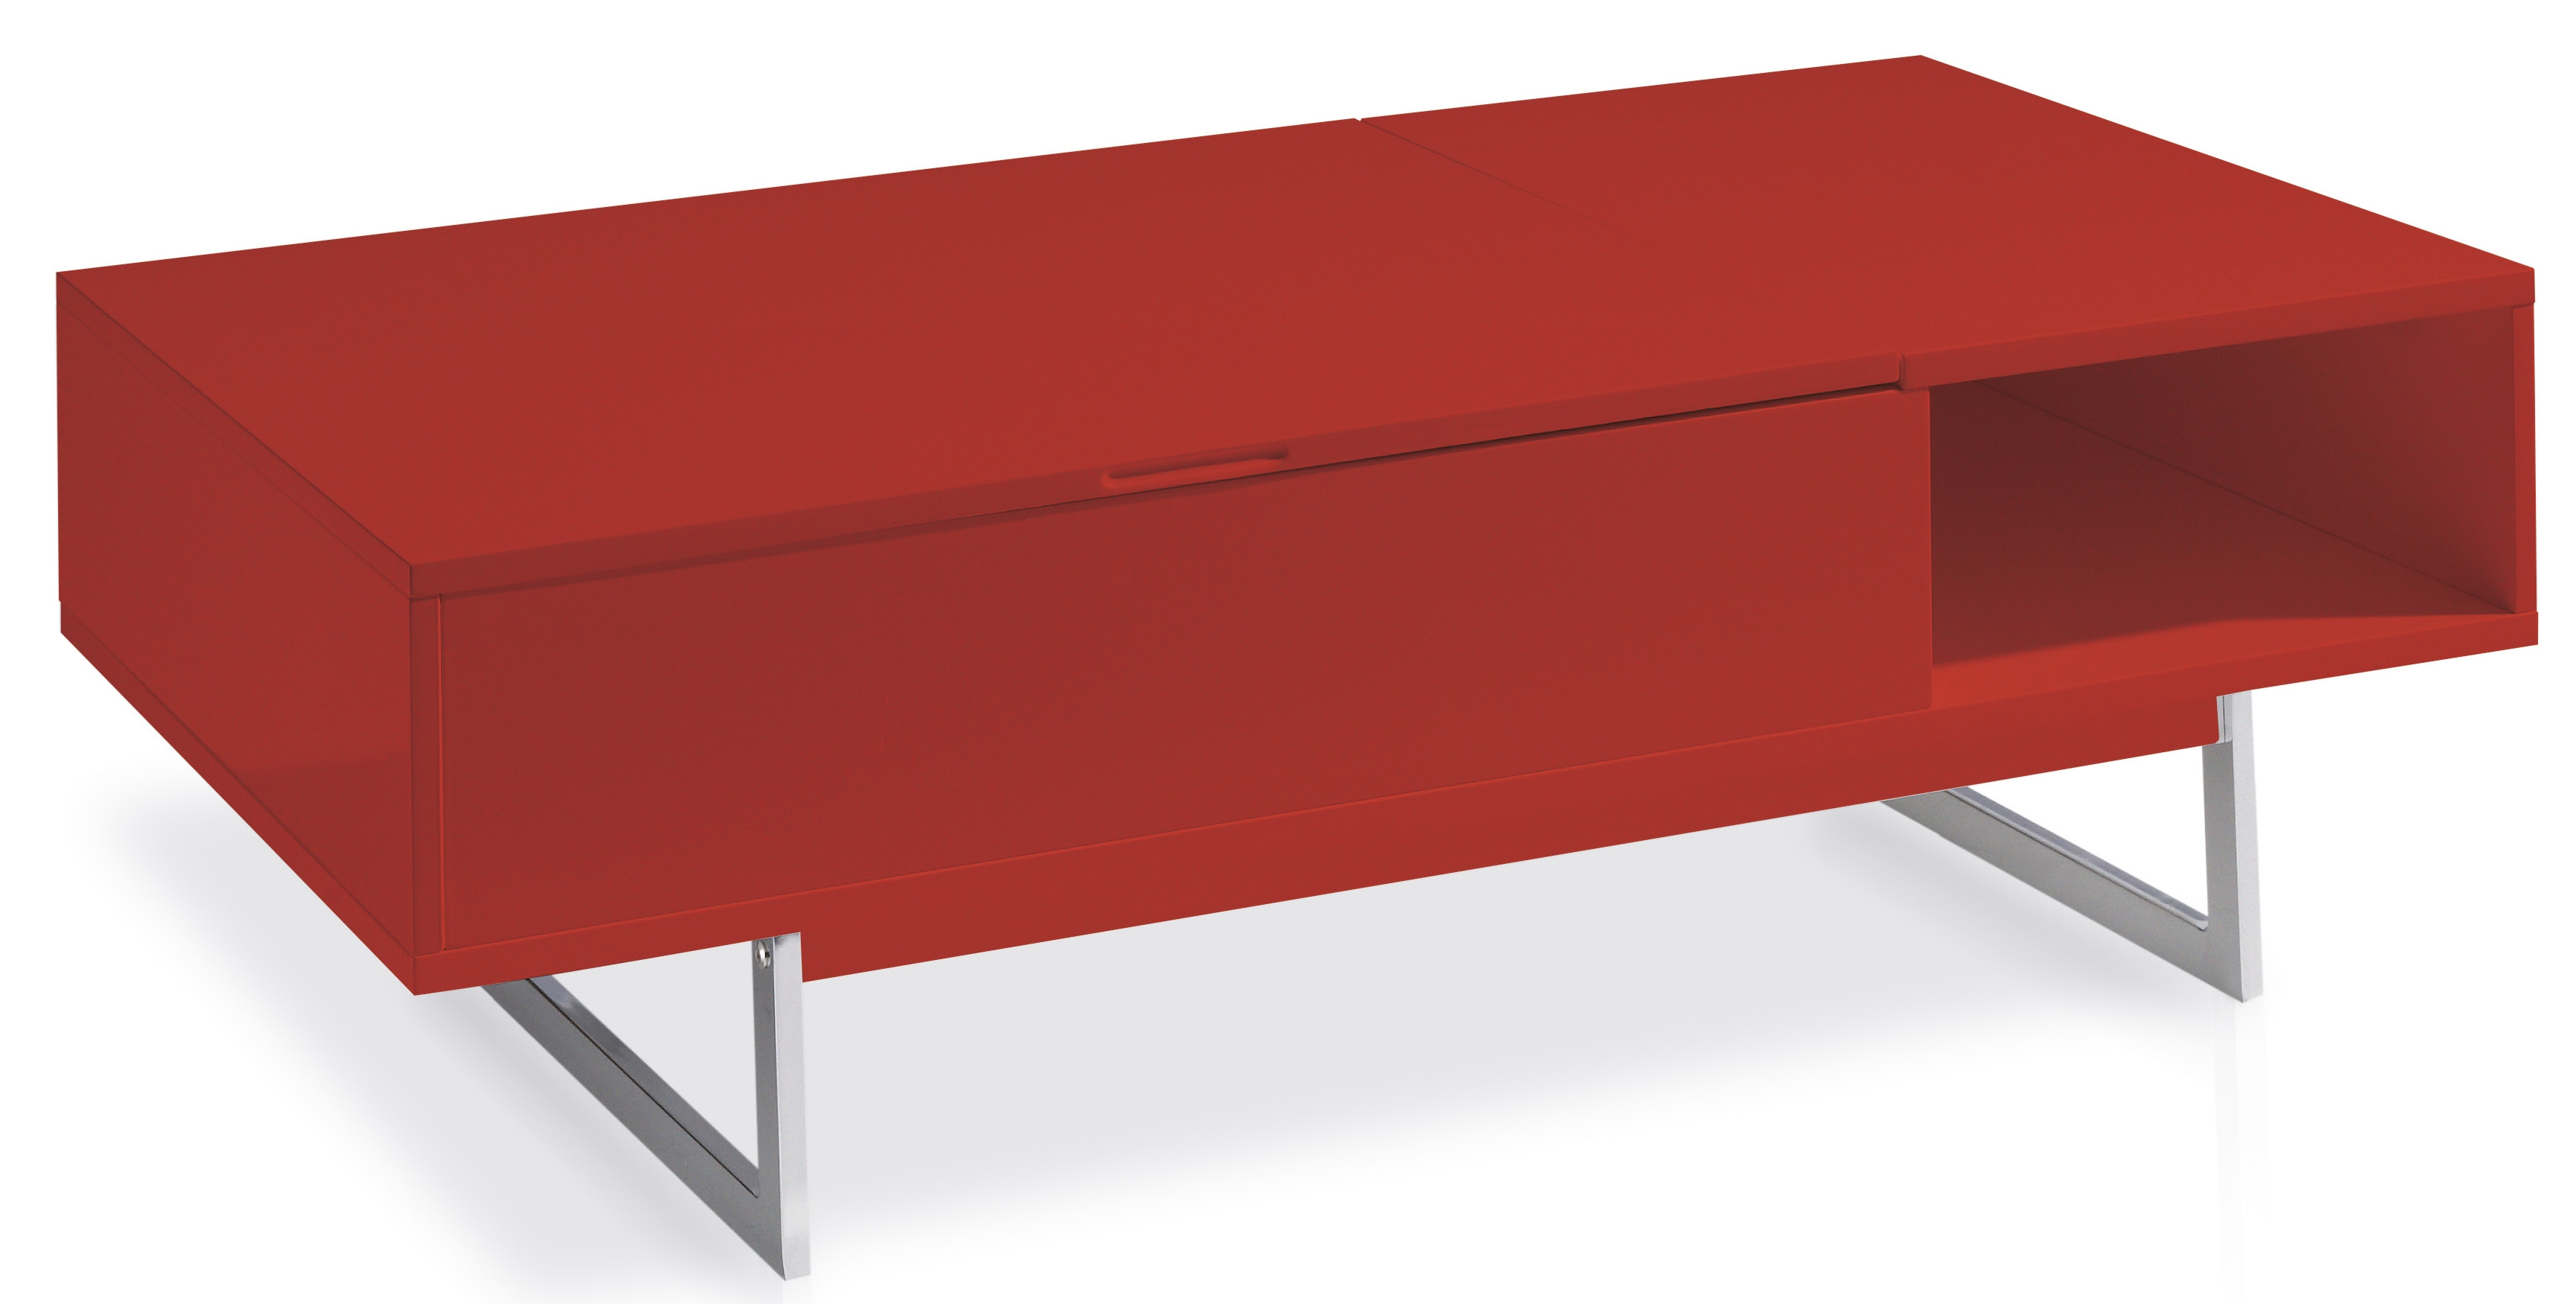 Table basse relevable laqu e rouge marsa - Table basse rouge laque ...